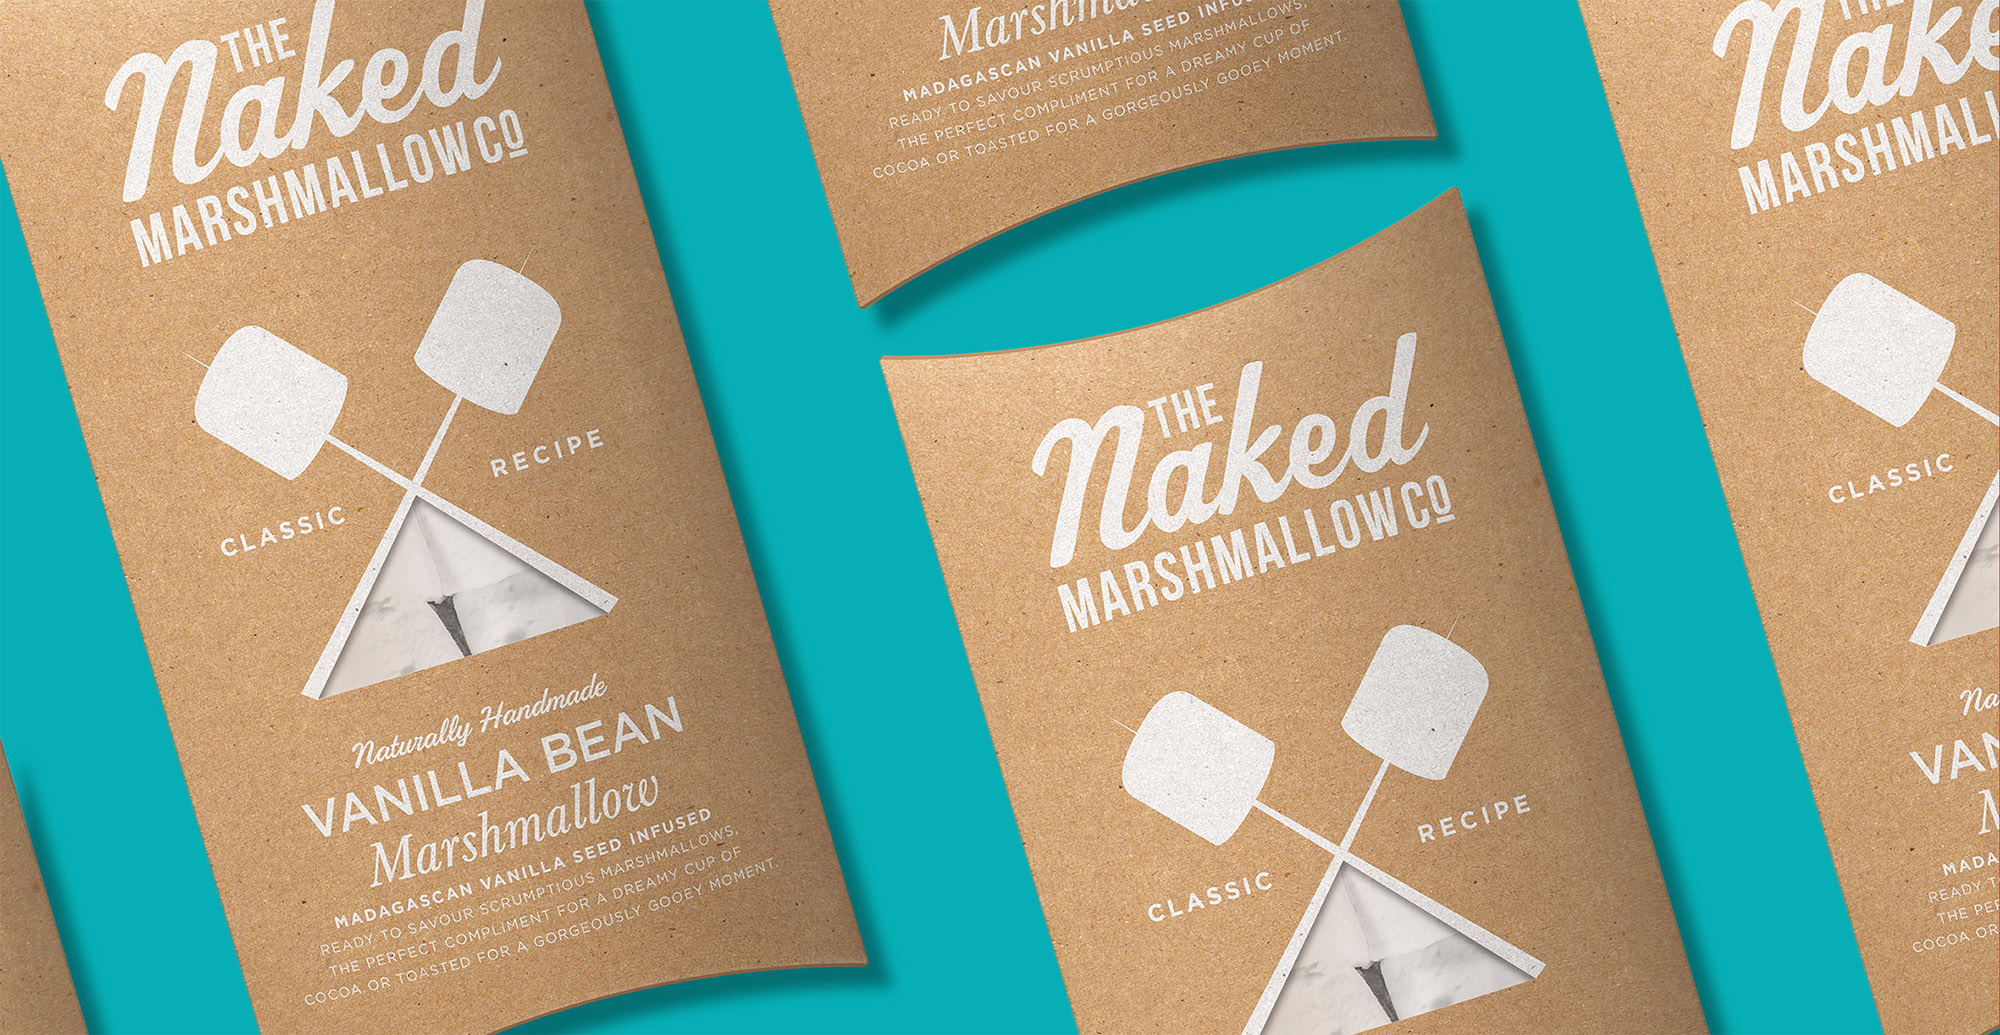 Branding and packaging design for confectionary brand The Naked Marshmallow Co by Design Happy London - Vanilla Bean Gin packaging design